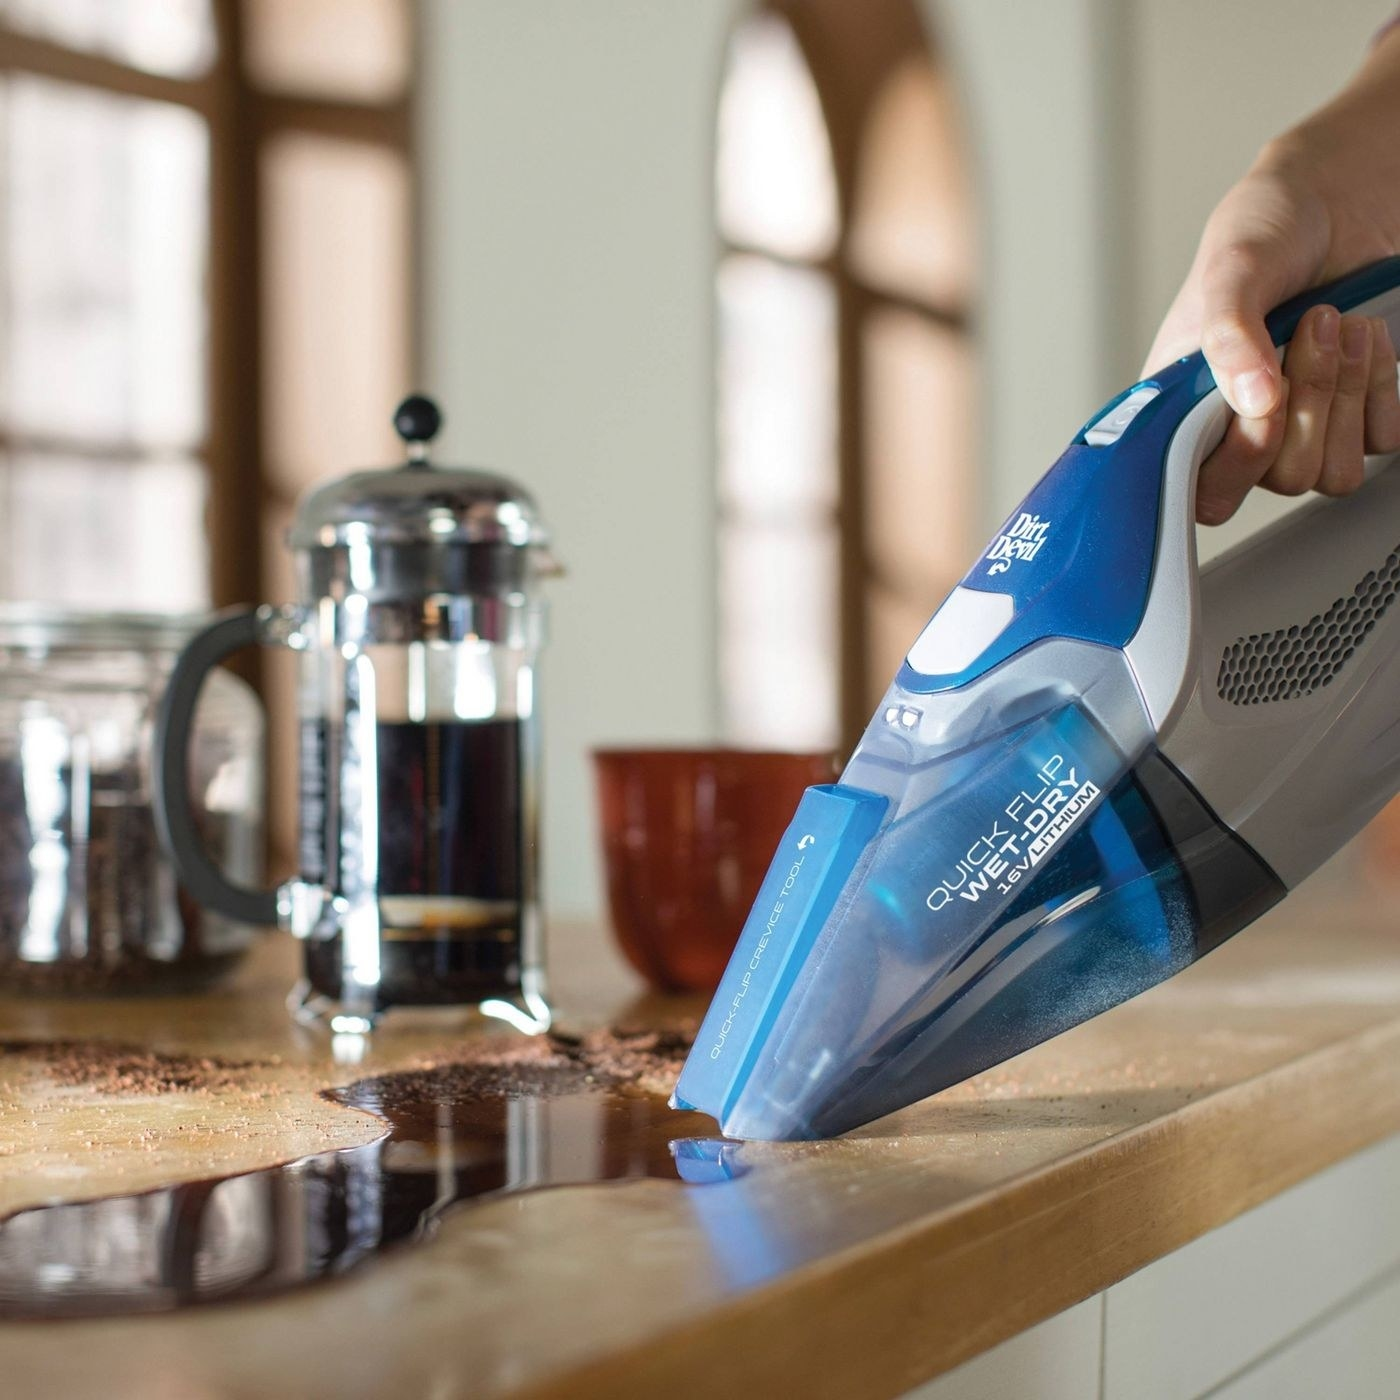 Blue and silver wet-dry vac cleaning up spilled coffee on the counter